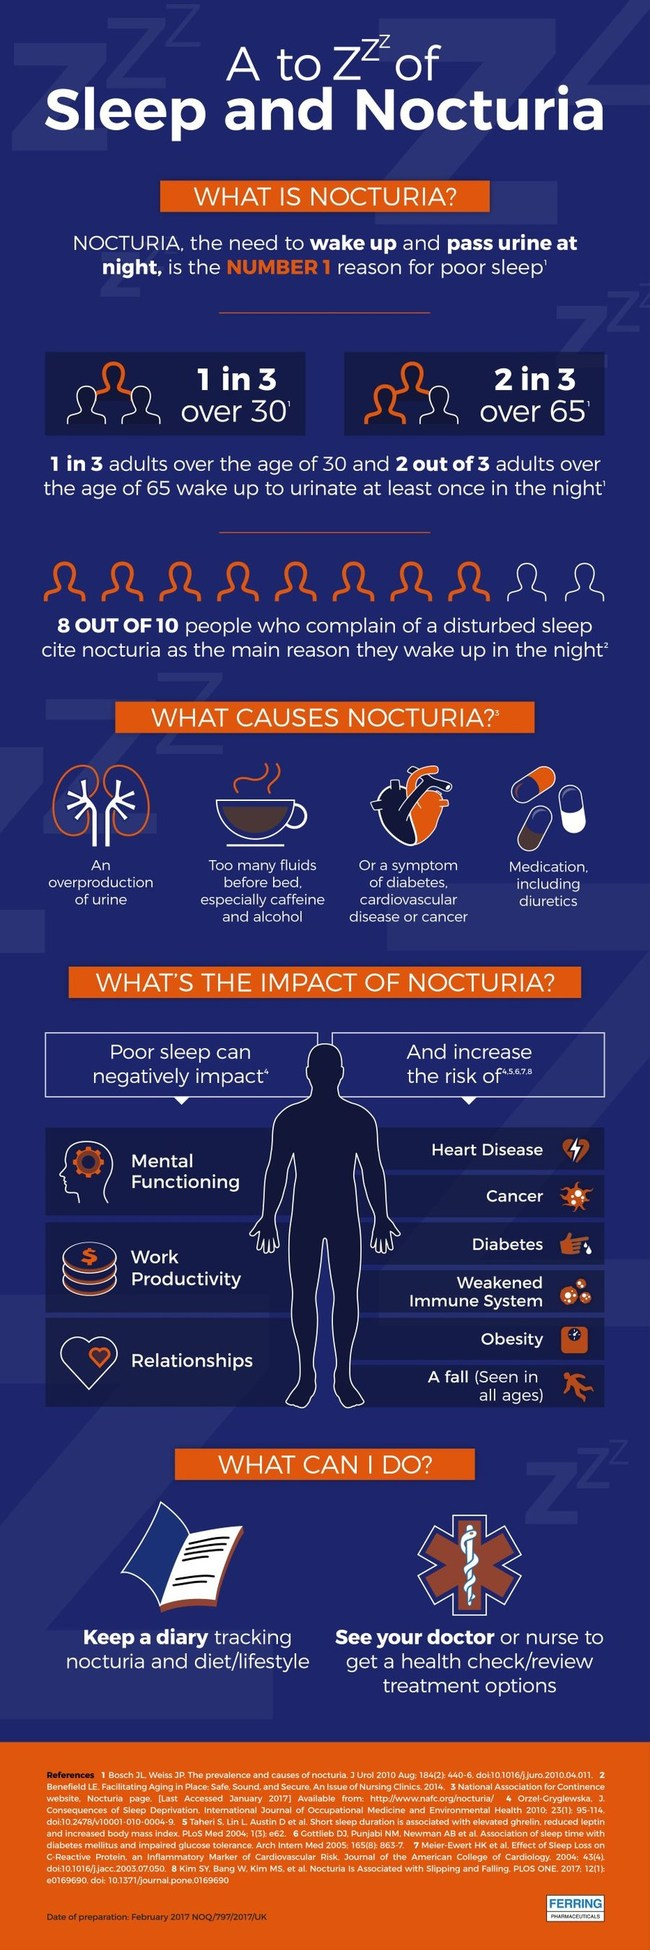 On World Sleep Day, experts say that waking to go to the toilet (nocturia) at night is the leading cause of a broken night's sleep. Learn more about nocturia via the 'A to Zz of sleep and nocturia' (PRNewsFoto/Ferring Pharmaceuticals)